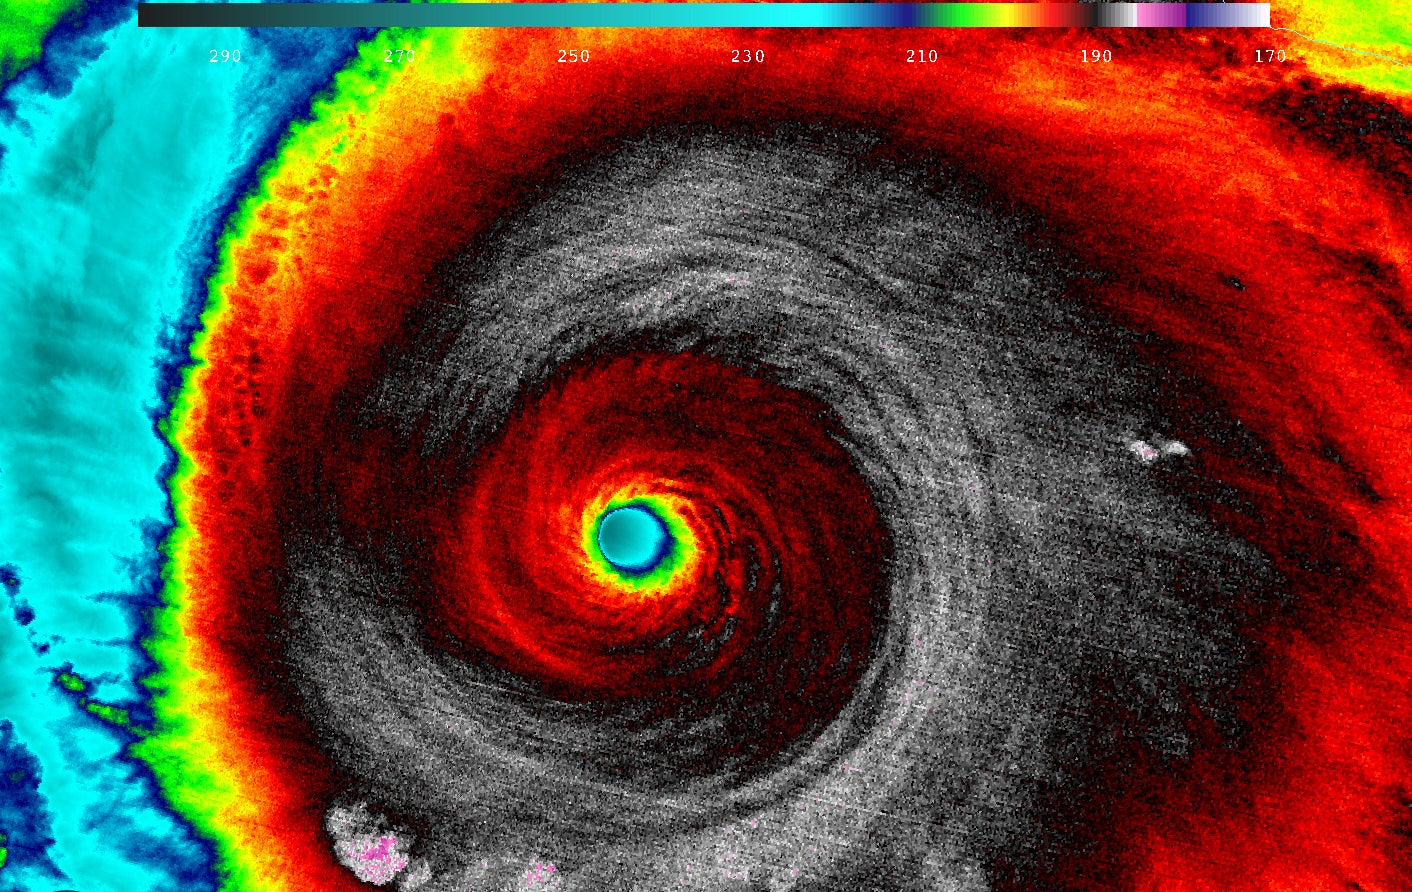 is a category 6 hurricane possible